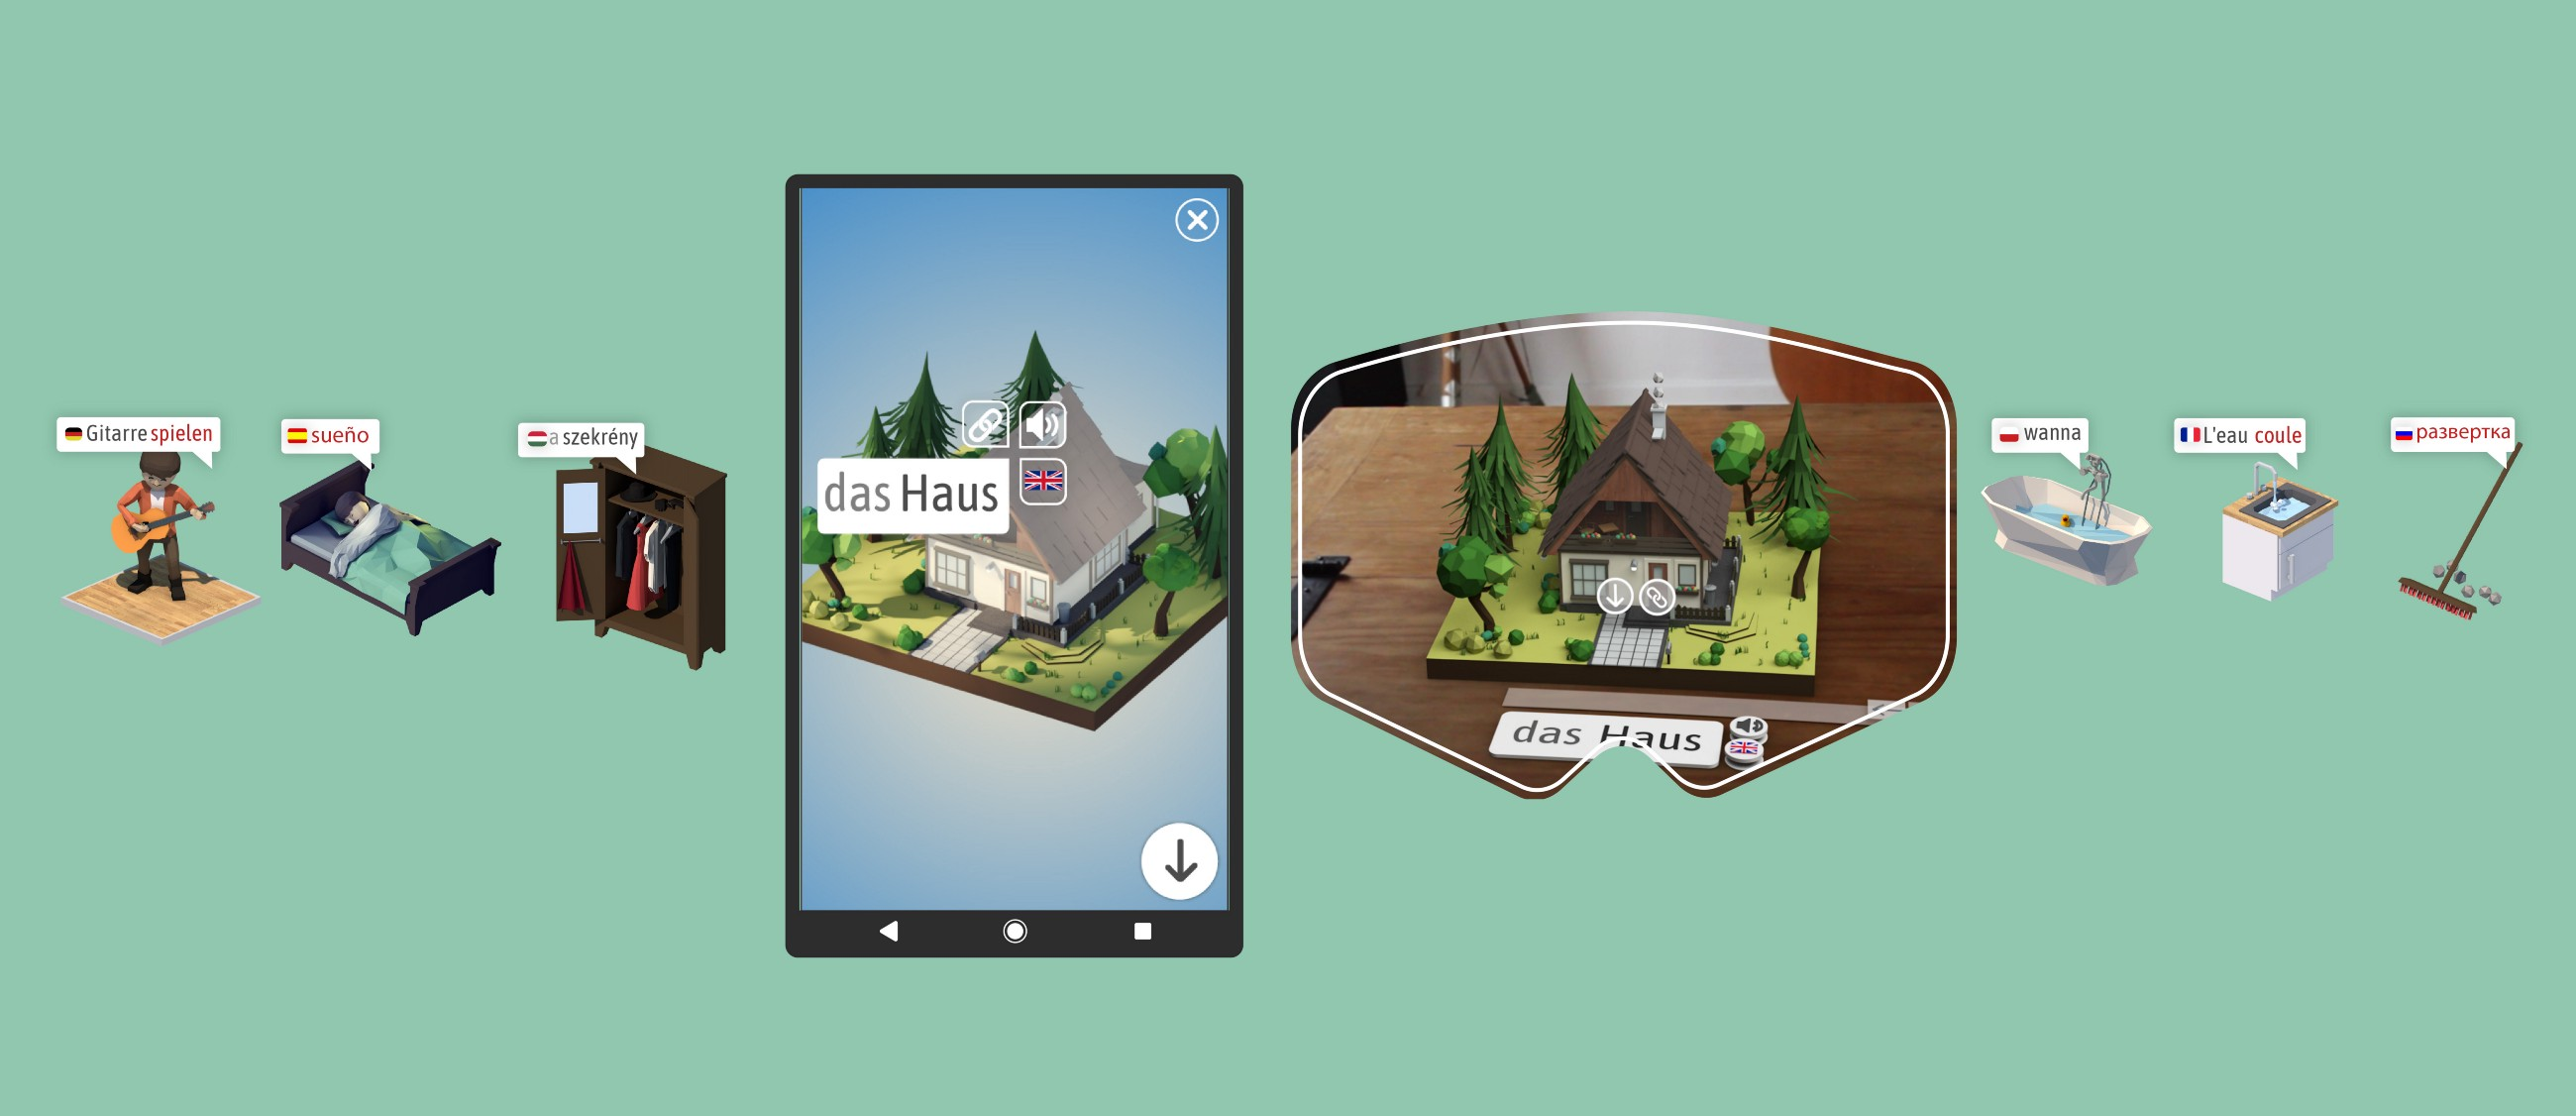 uxdesign.cc - Matthäus Niedoba - Building applications for Mixed Reality-a UX case study